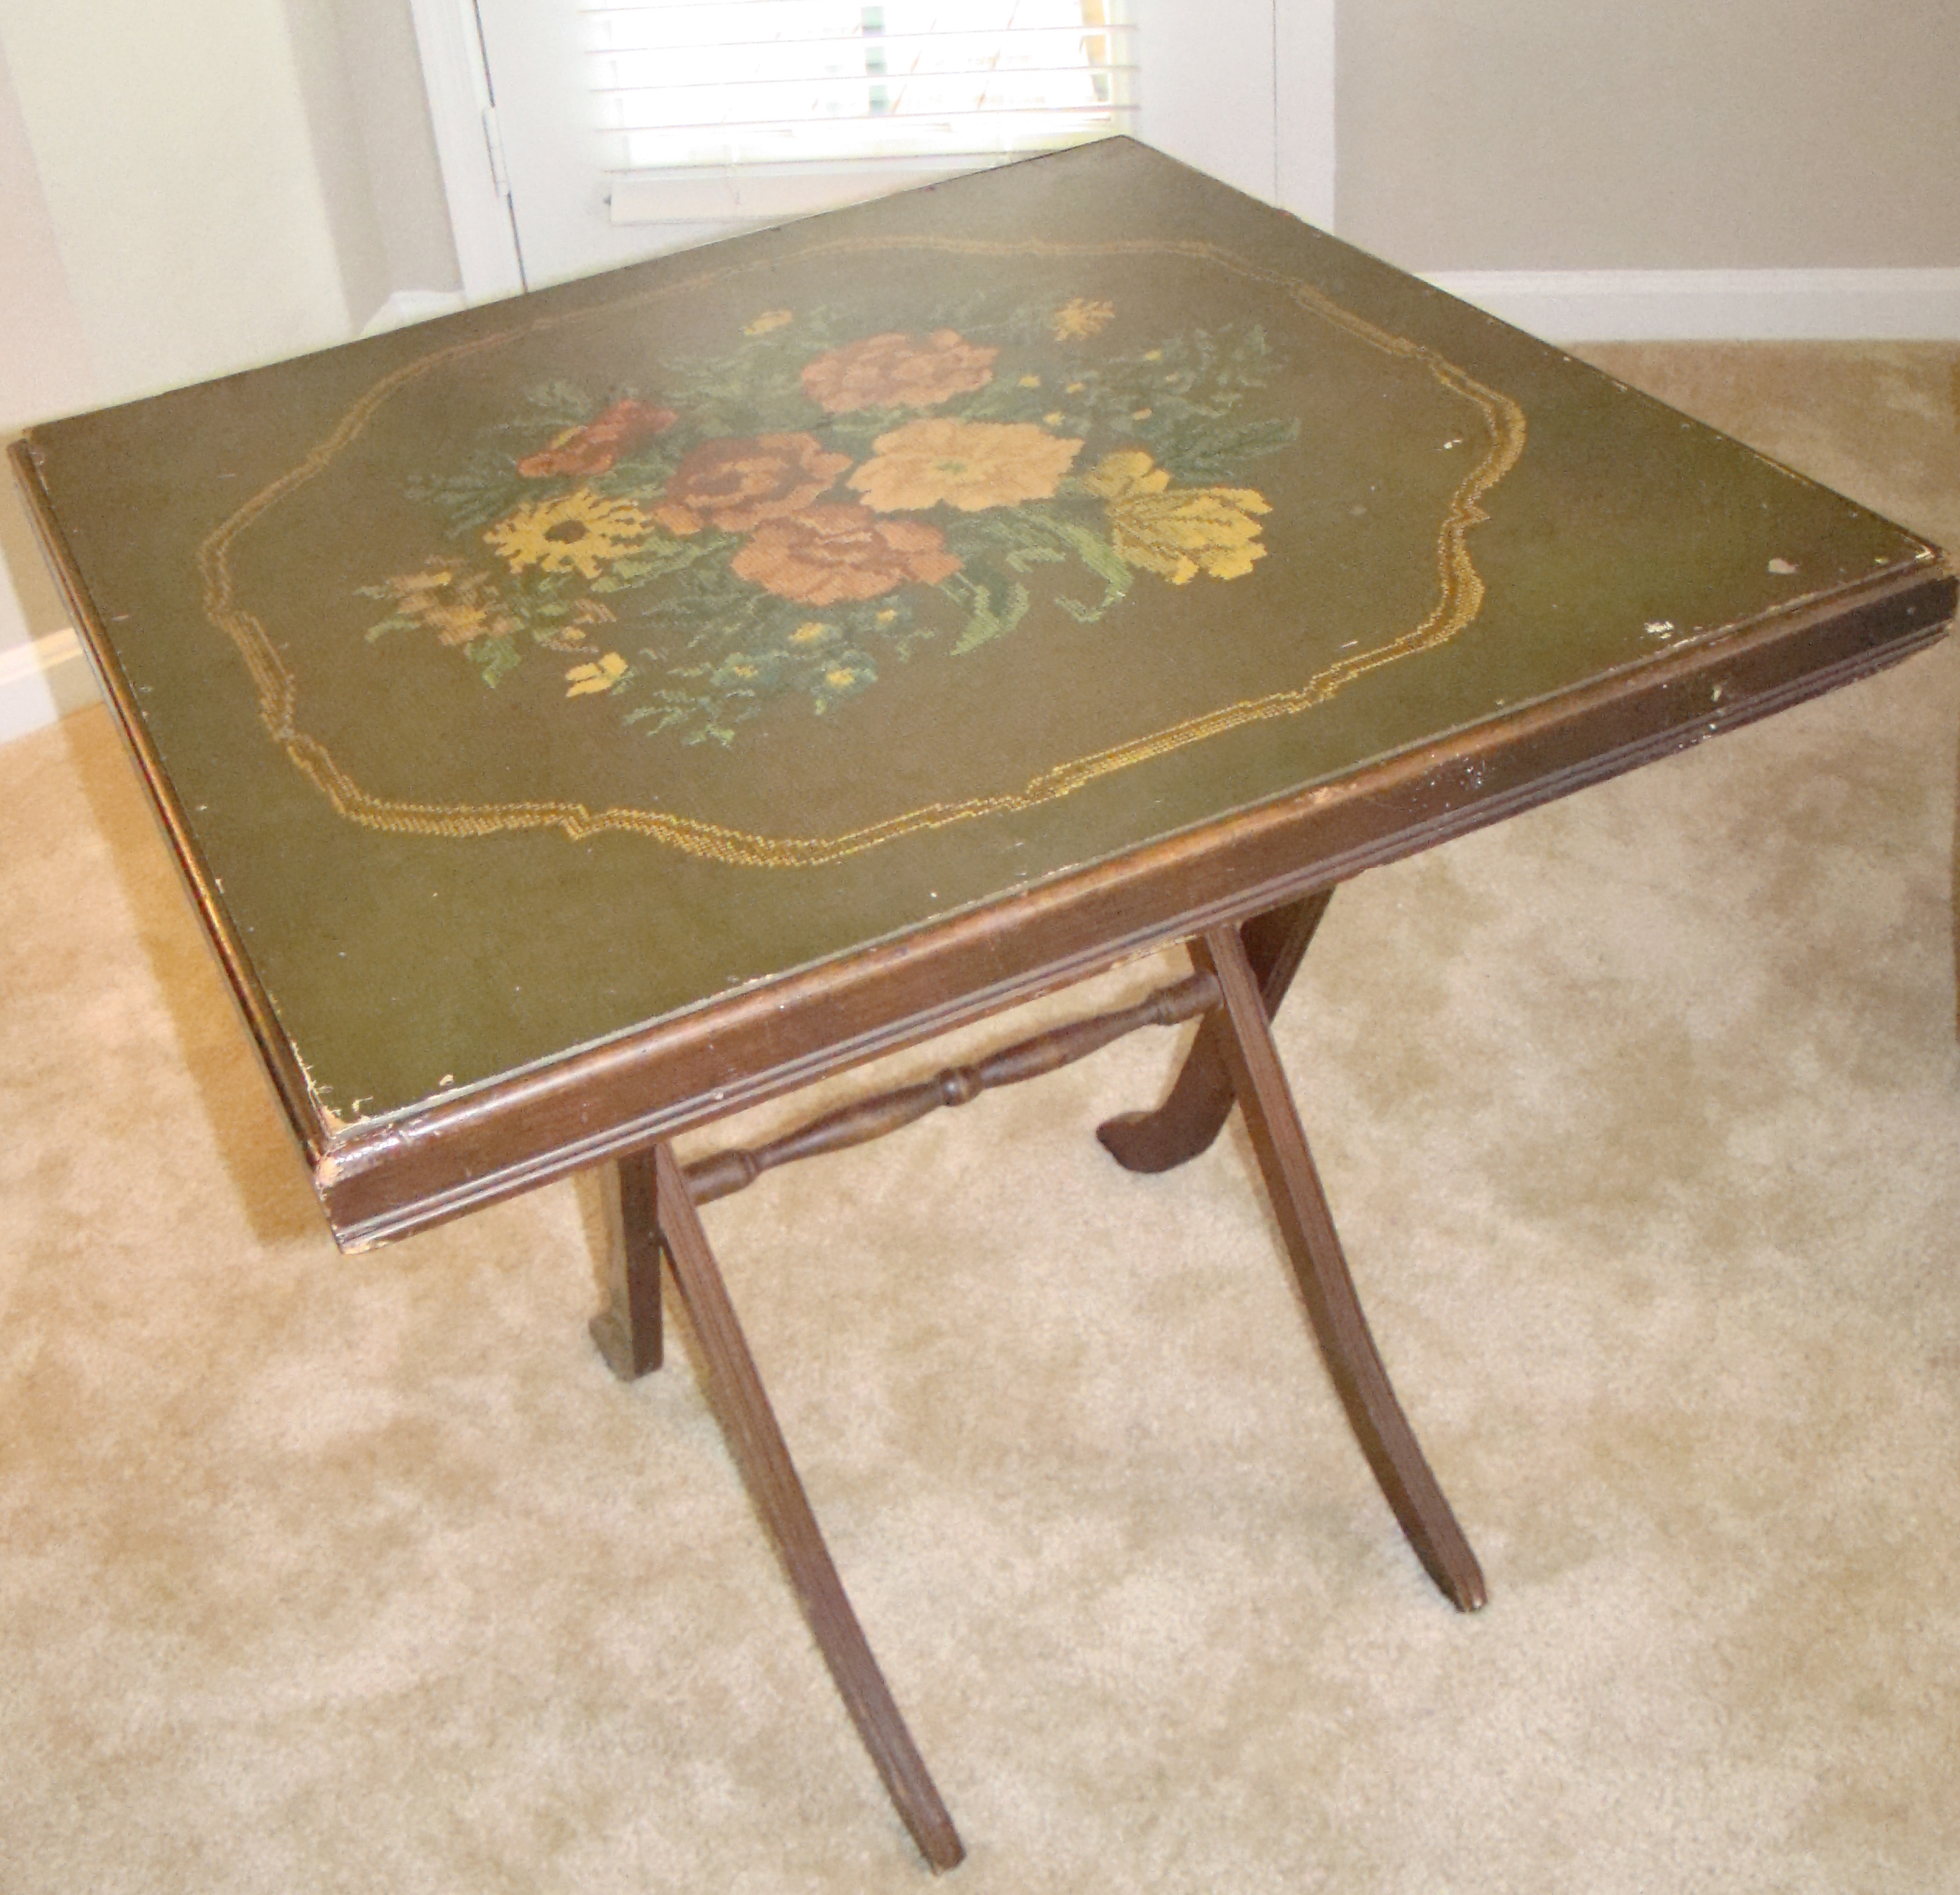 topper table is tops in gypsy life moxy rants. Black Bedroom Furniture Sets. Home Design Ideas